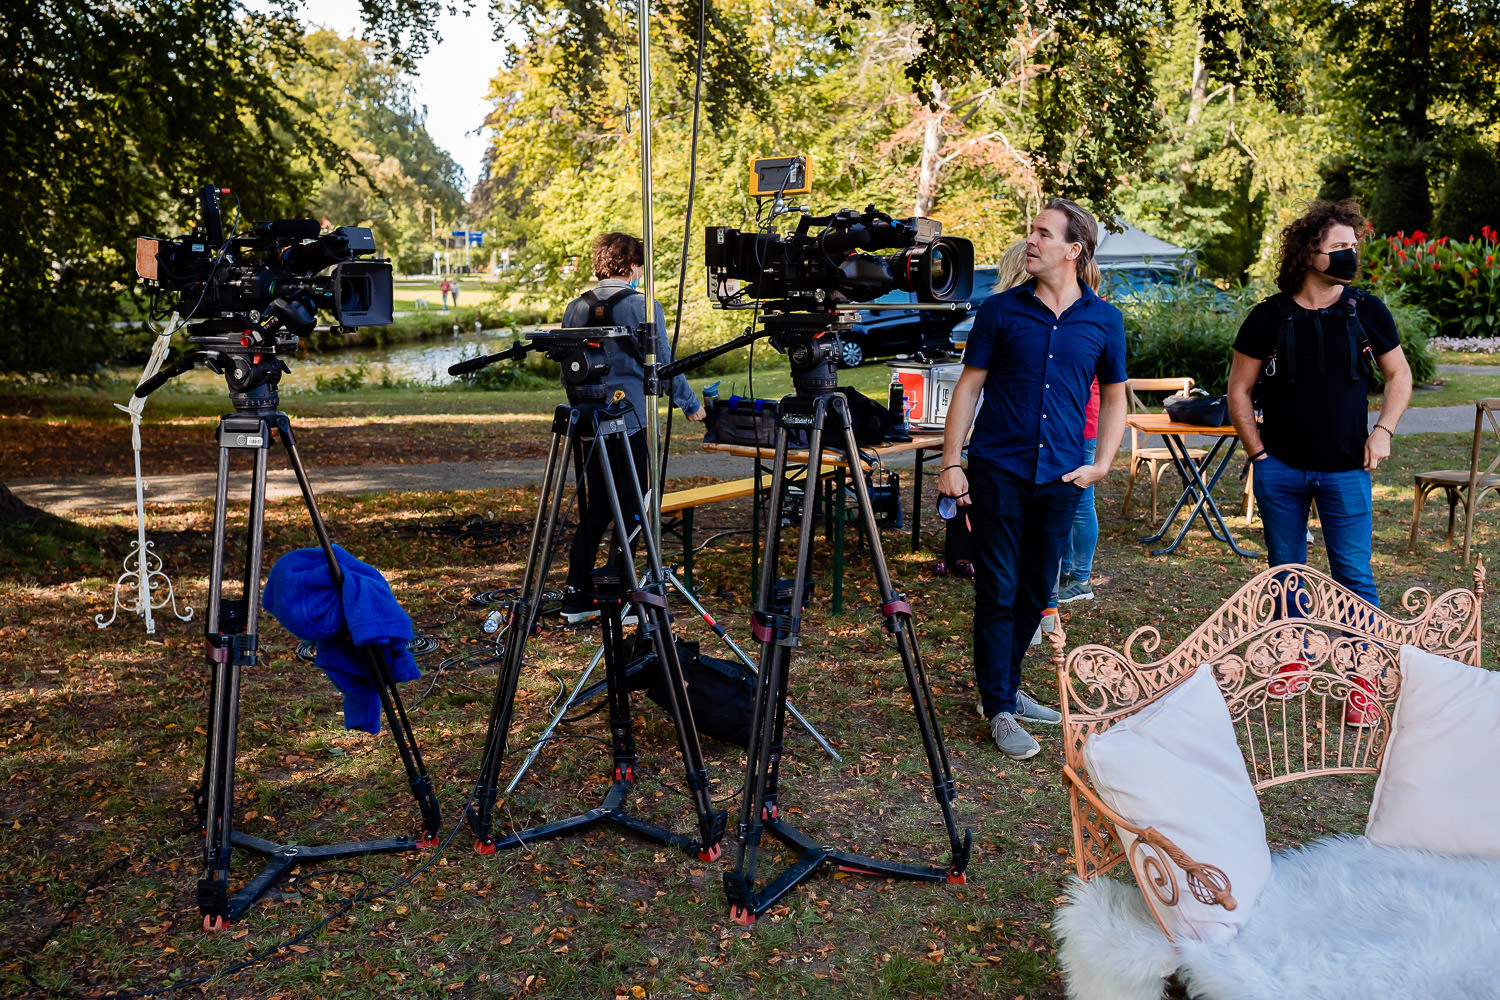 Filmcrew Married At First Sight